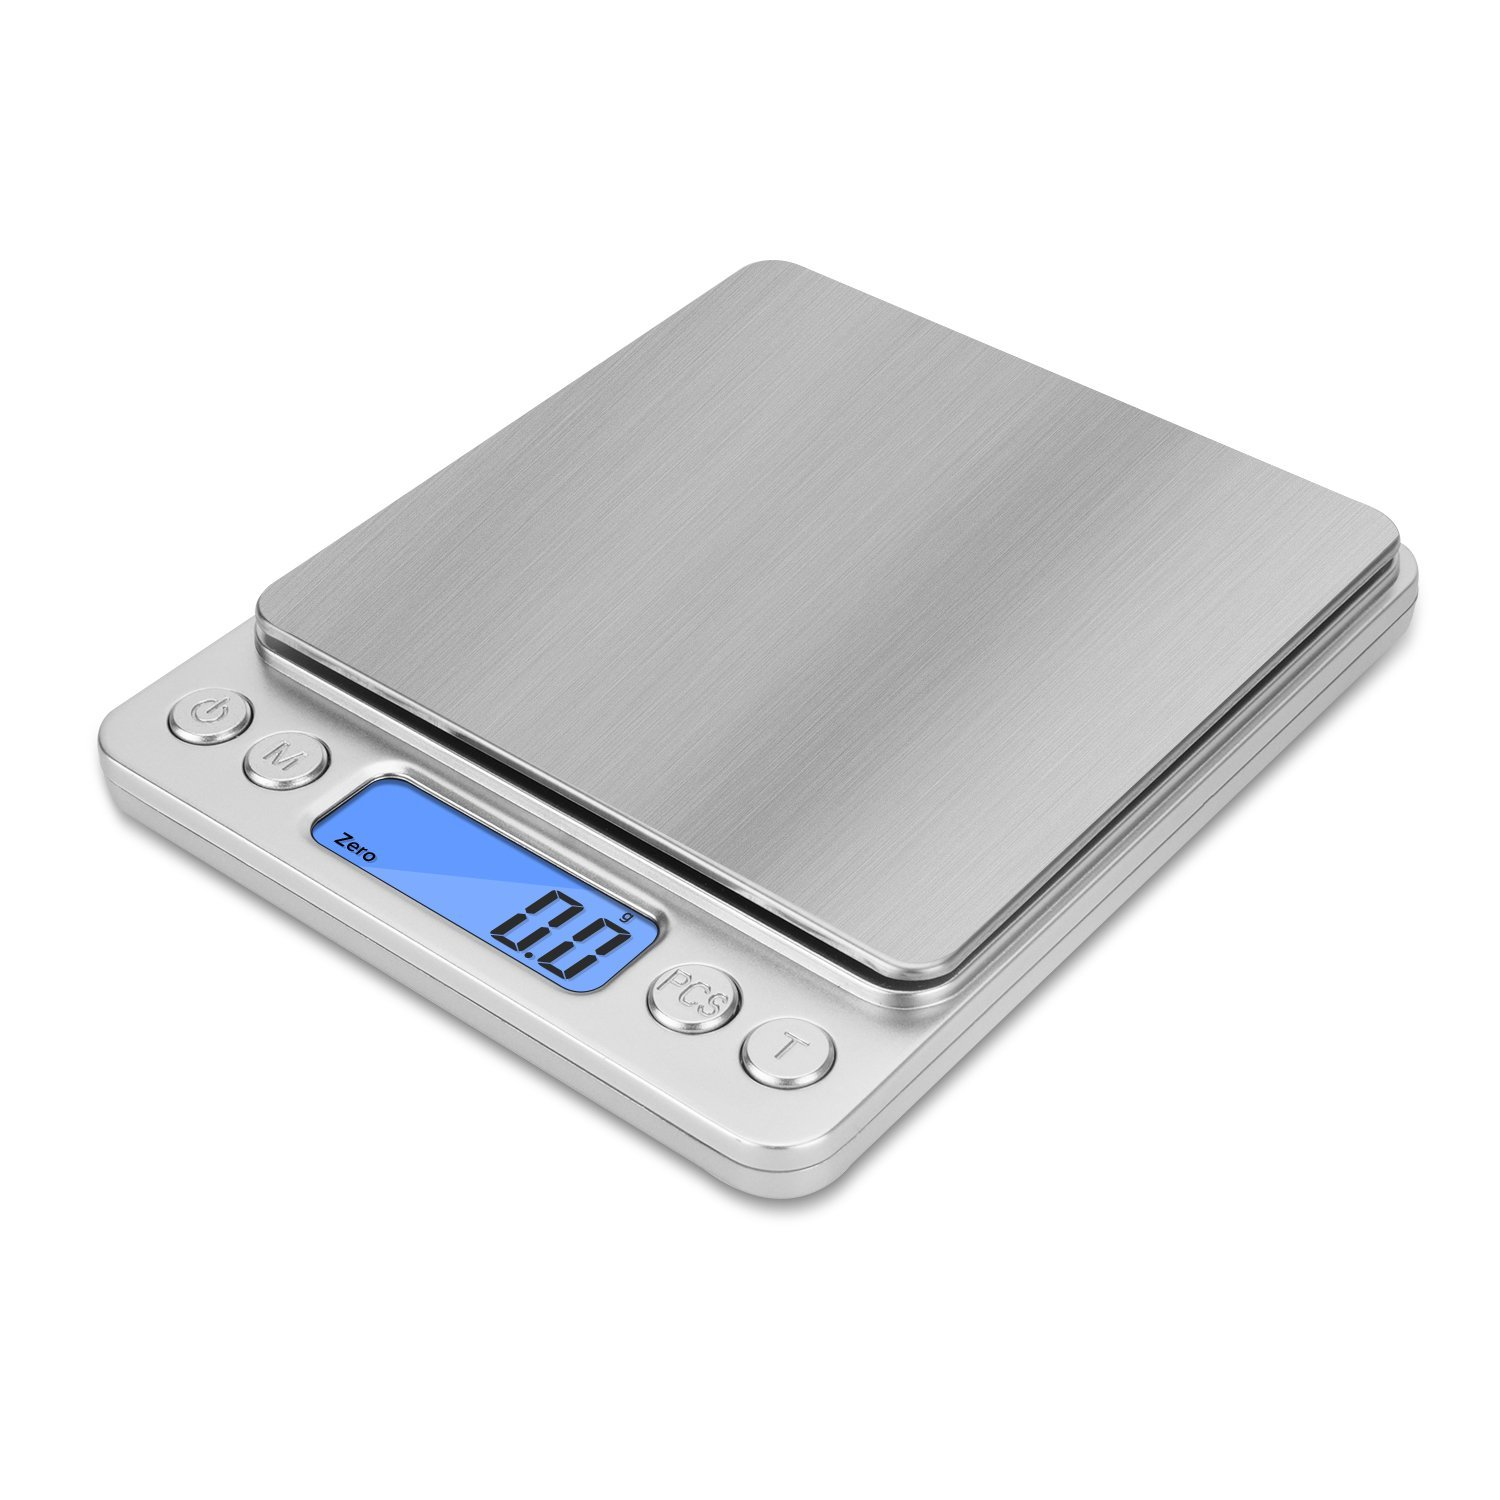 NEXT-SHINE P221 Gram Scale Digital Kitchen Series Scale 2000 x 0.1g Multi-functionals for Cooking Baking Jewelry Weight Postal Parcel